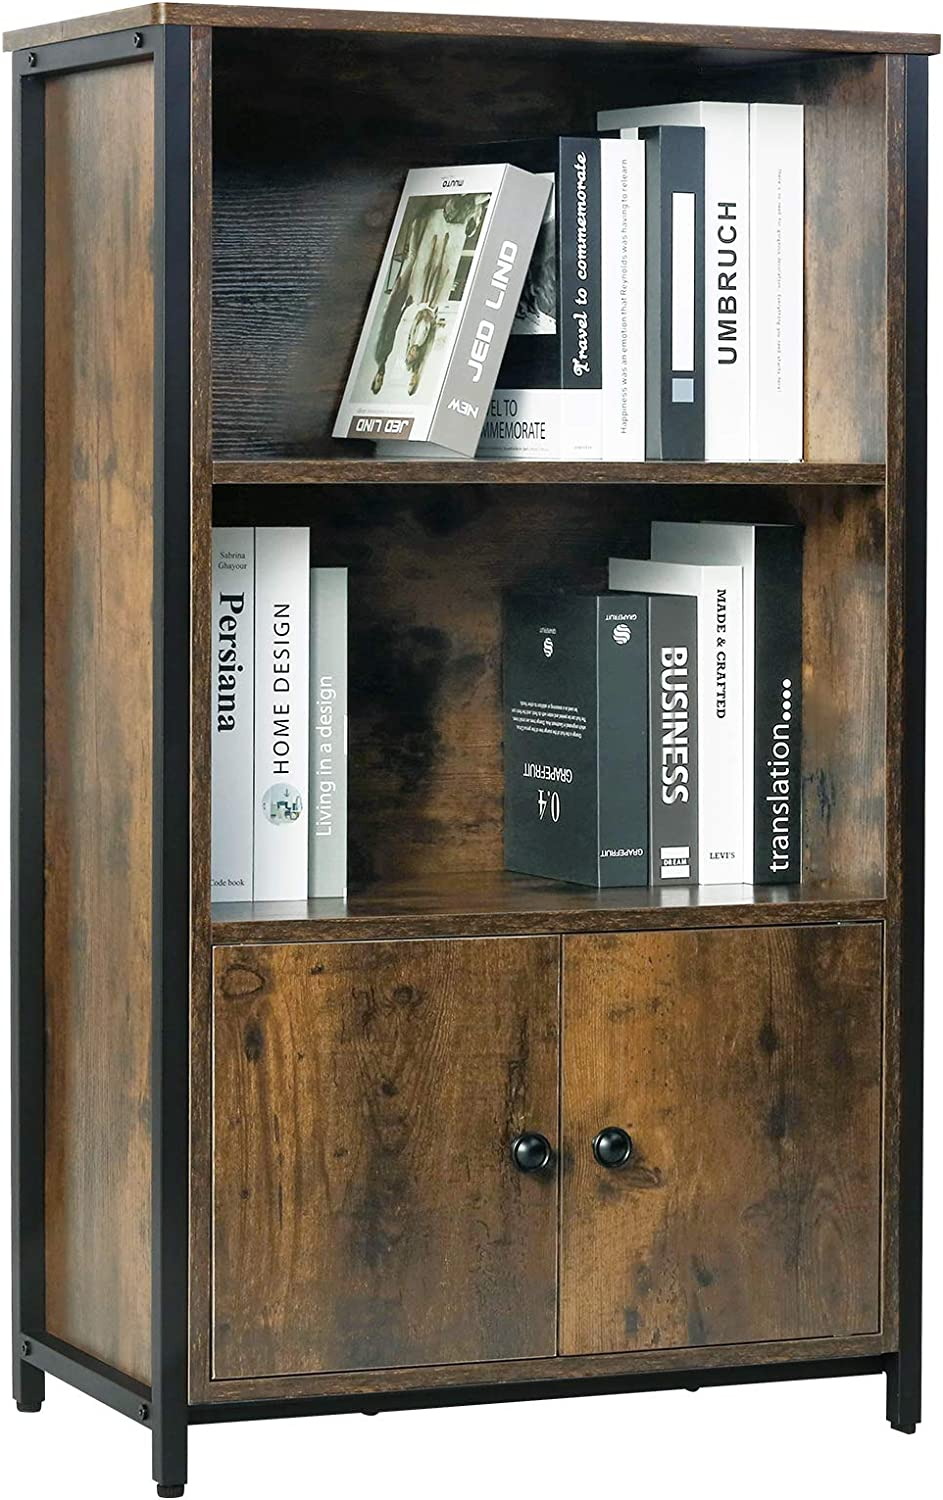 Kamiler Retro Bookcase, 3-Tier Bookshelf with Doors, Storage Cabinet for Books, Photos, Decorations, in Living Room, Office, Library, Mid-Century Modern Style, Sturdy Metal Frame, Rustic Brown